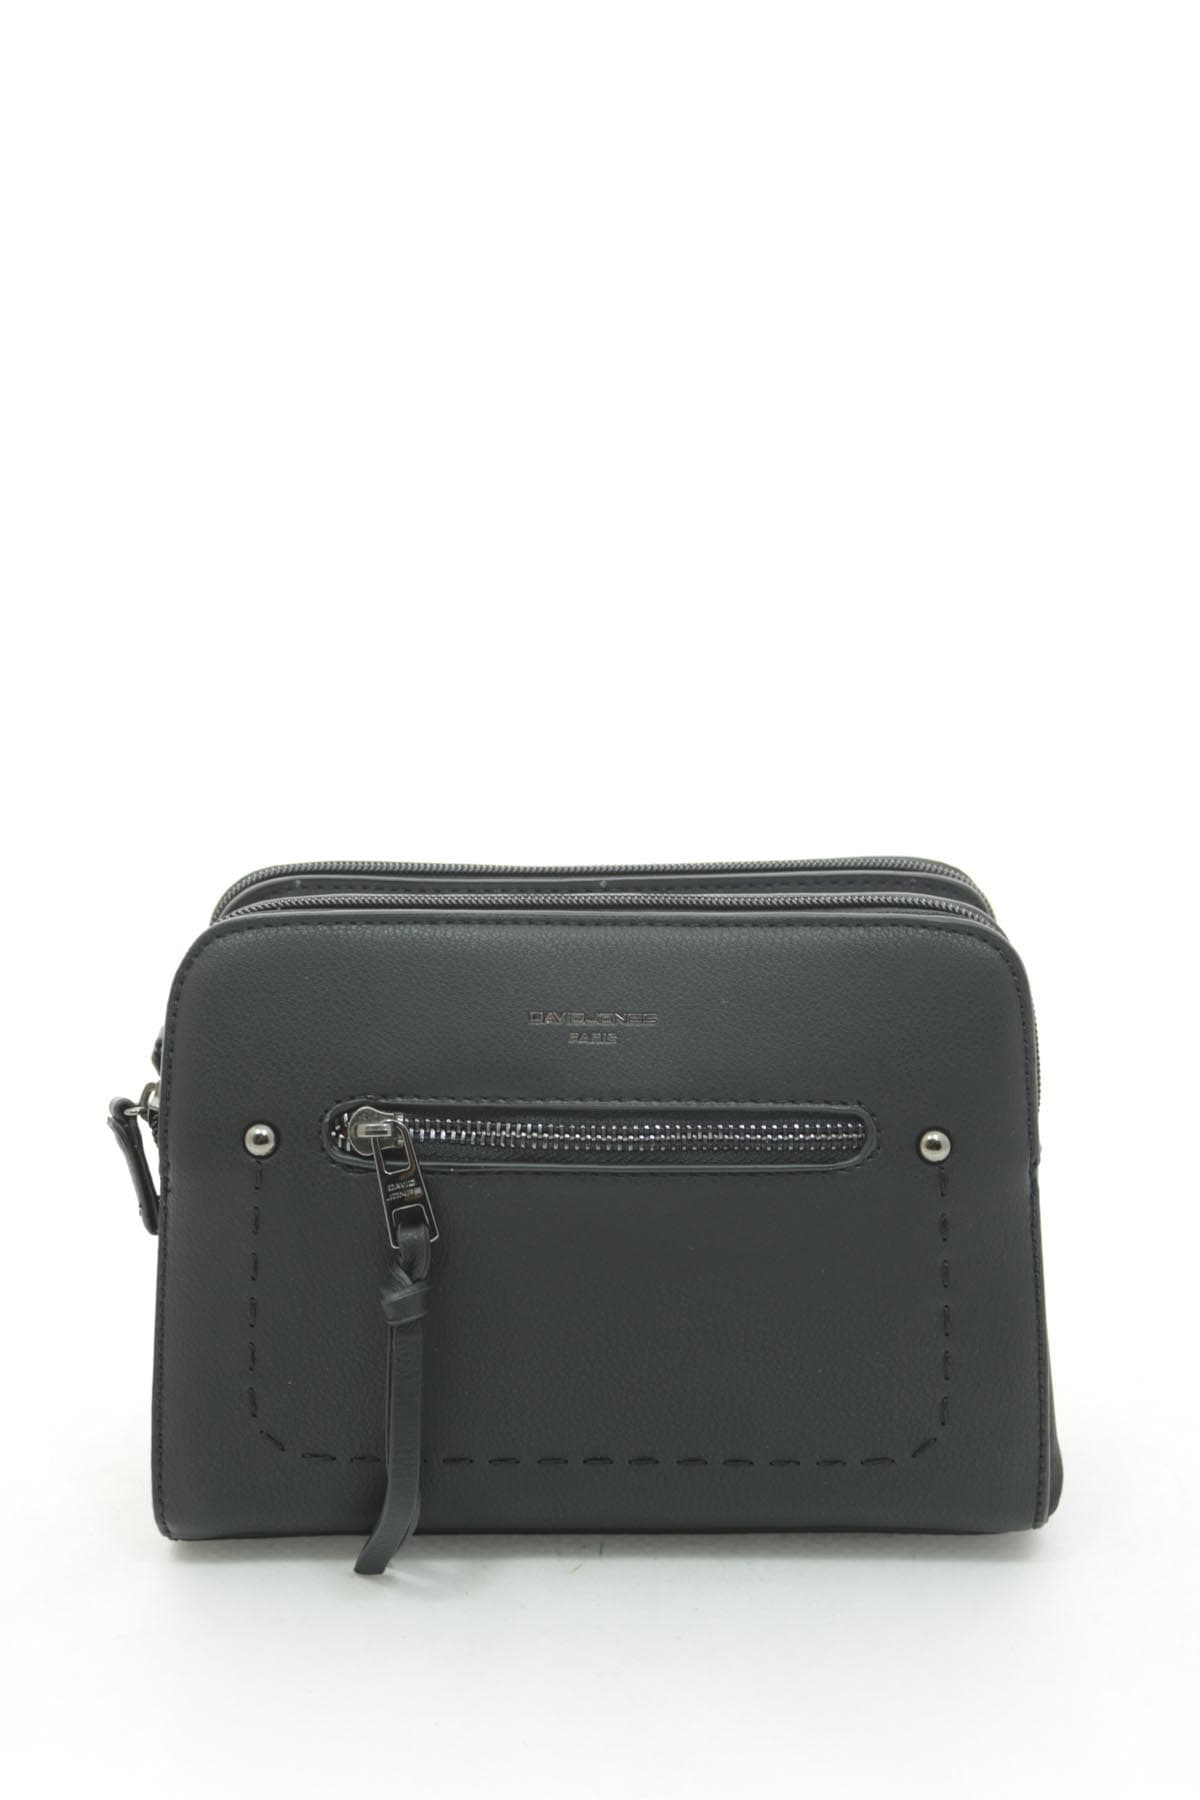 Geanta pt dame David Jones CM5386T BLACK